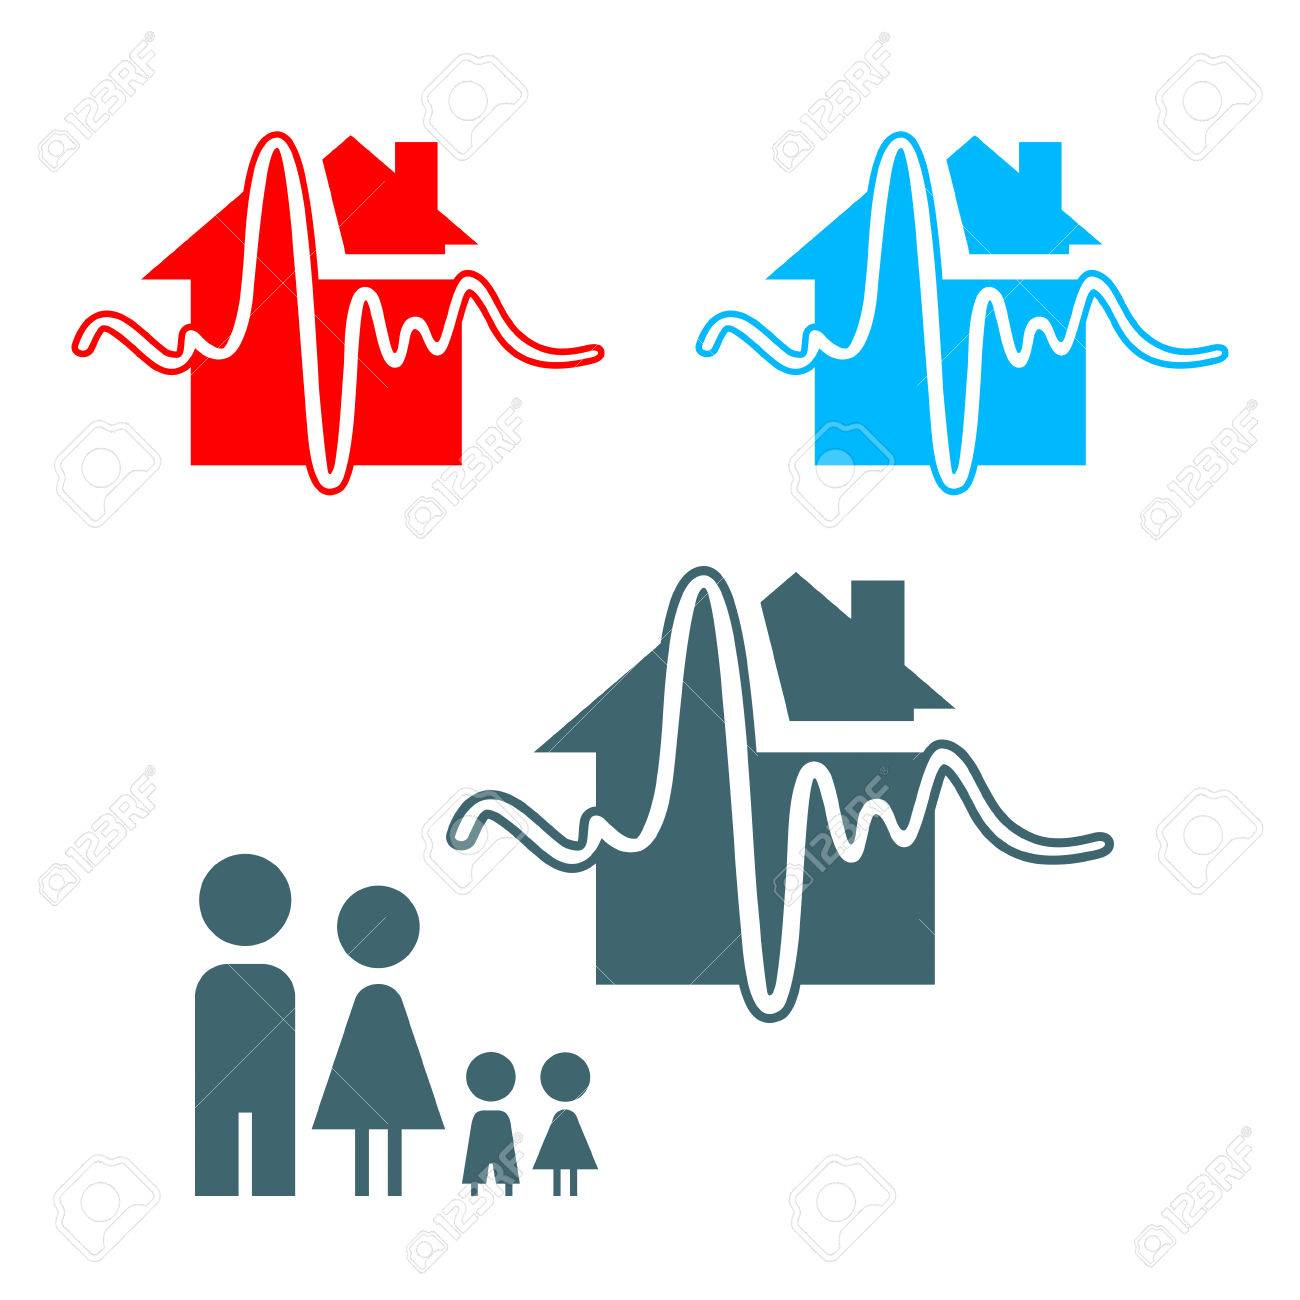 Earthquake insurance icon with family isolated Stock Vector - 6431655